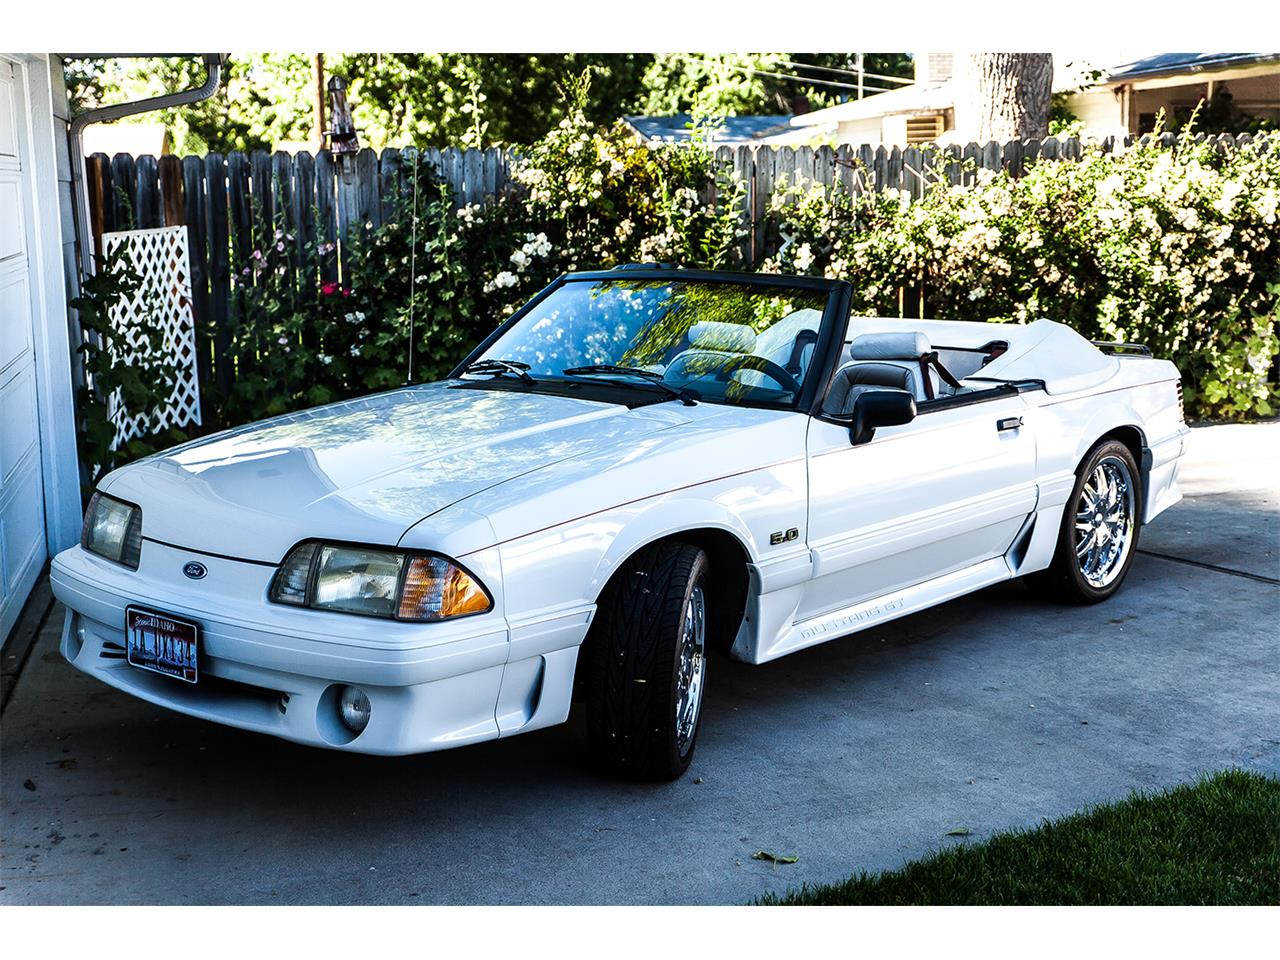 Large picture of 90 mustang gt c49x